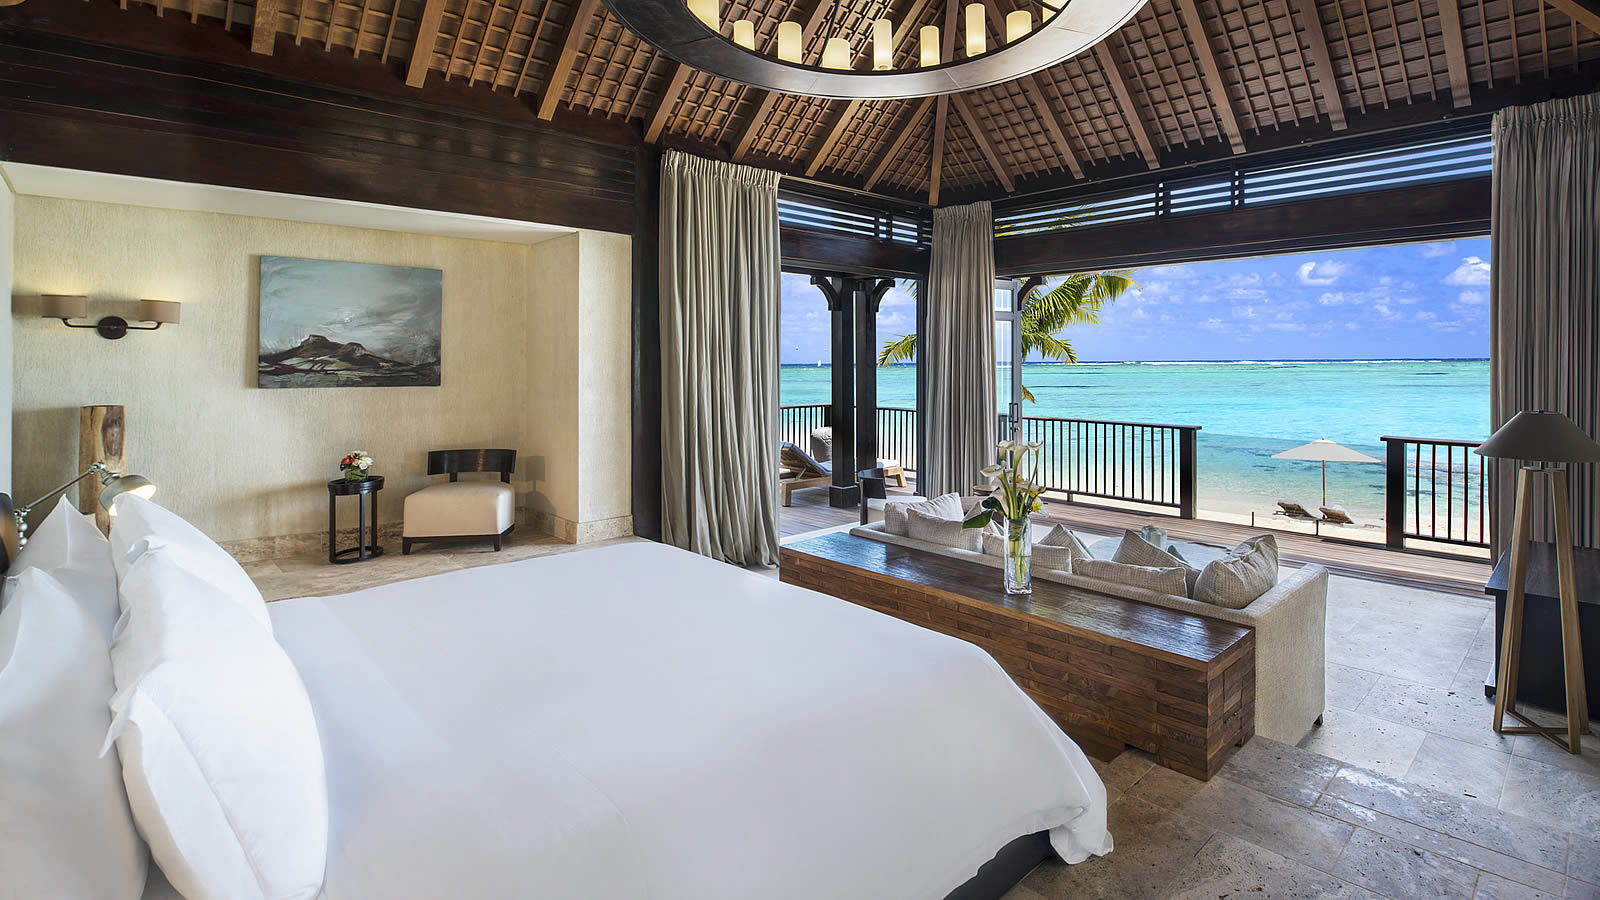 St. Regis Mauritius Private Villa bedroom with sea view